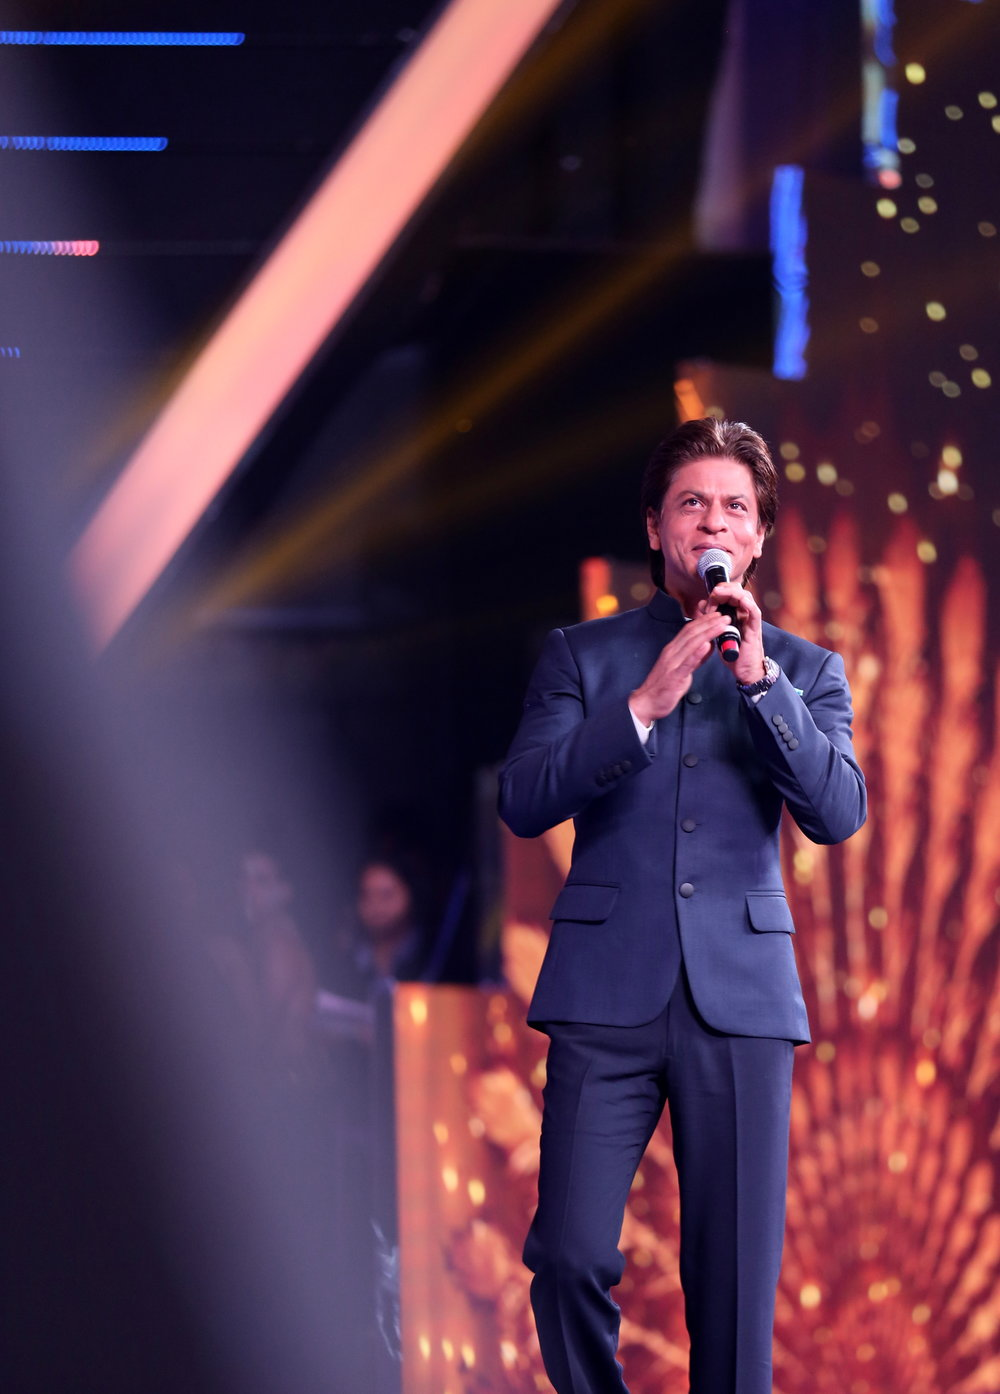 The ever so charming, Shahrukh Khan